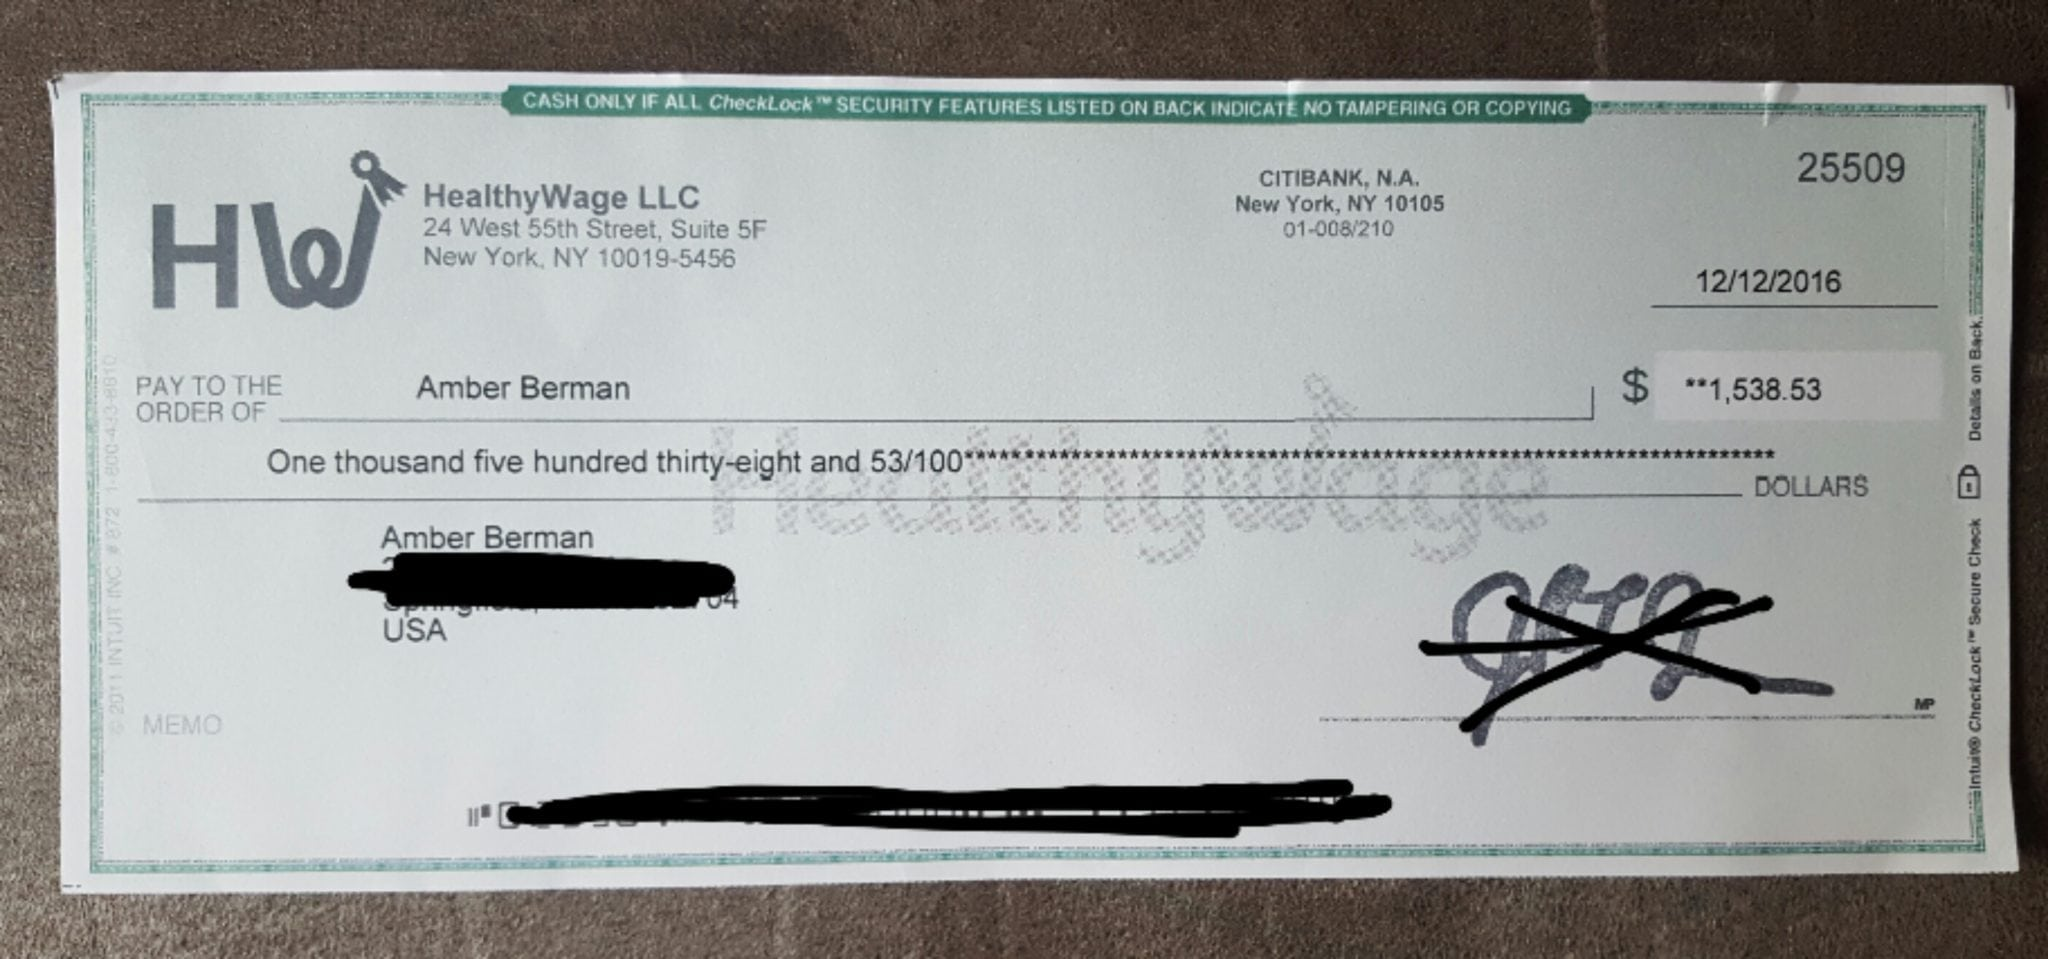 HealthyWage Check proof of payment with the amount of $1,538.53